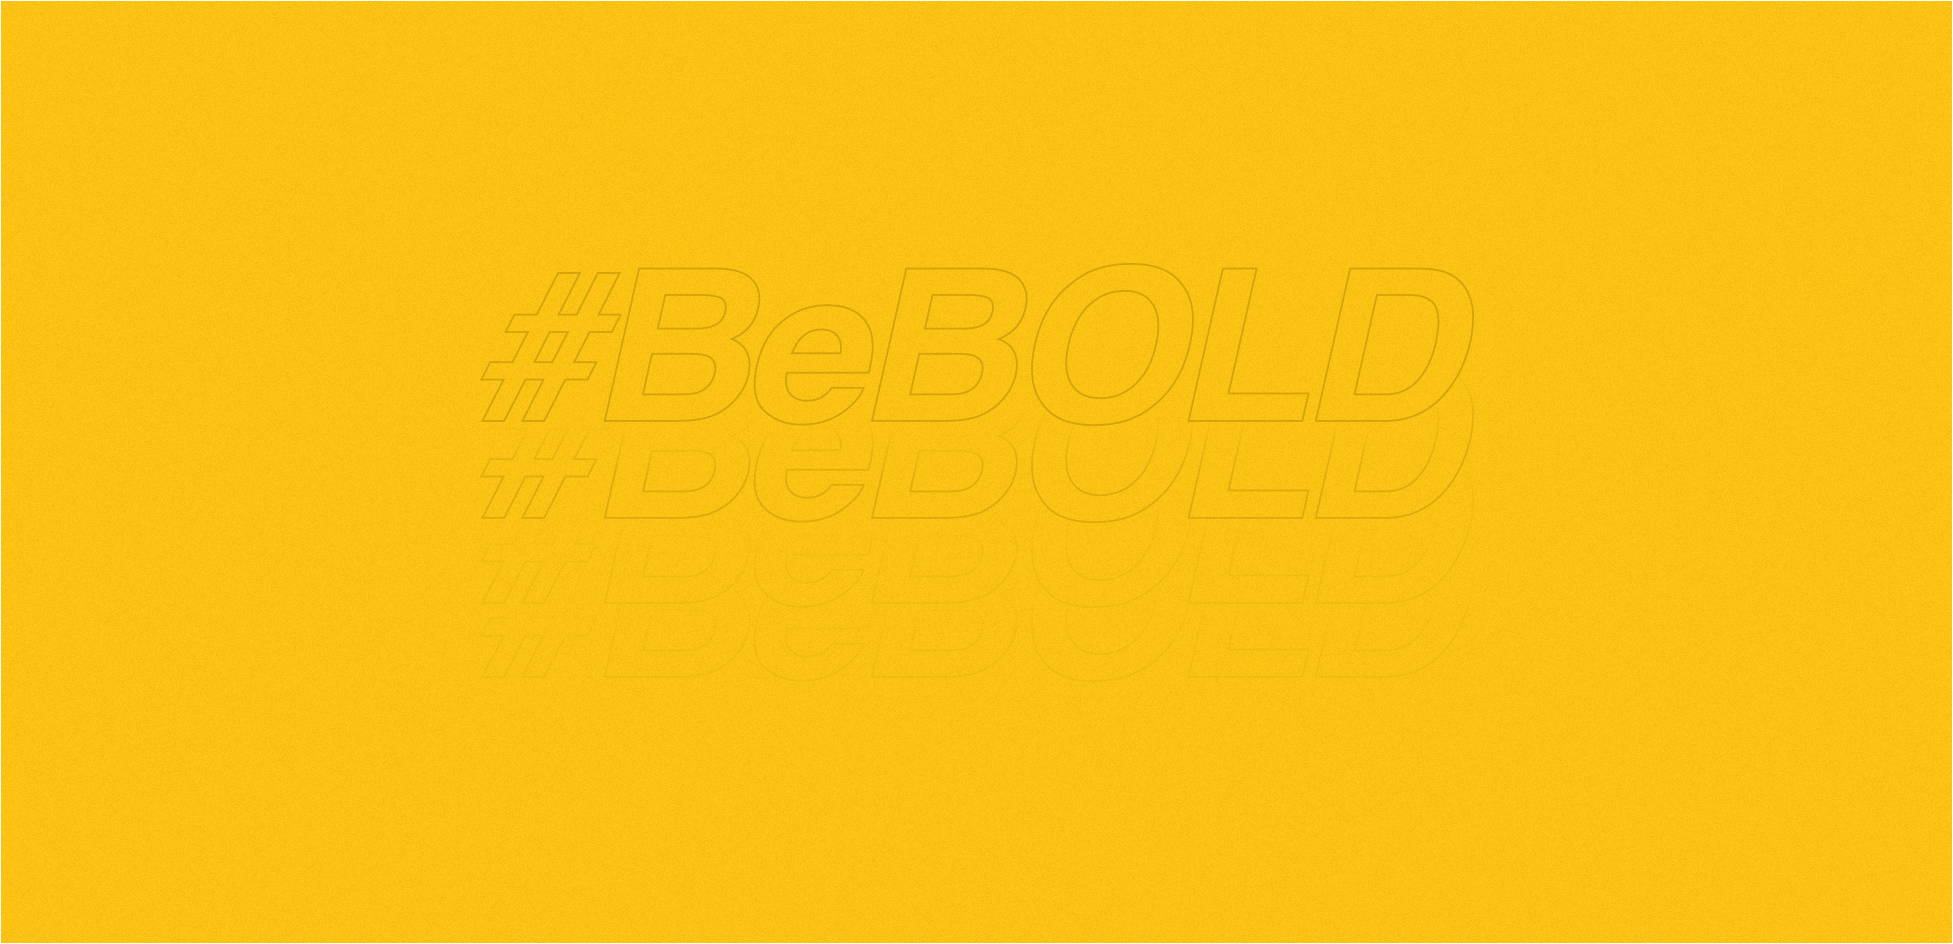 Be Bold - Its time to make a chance - Layer Up